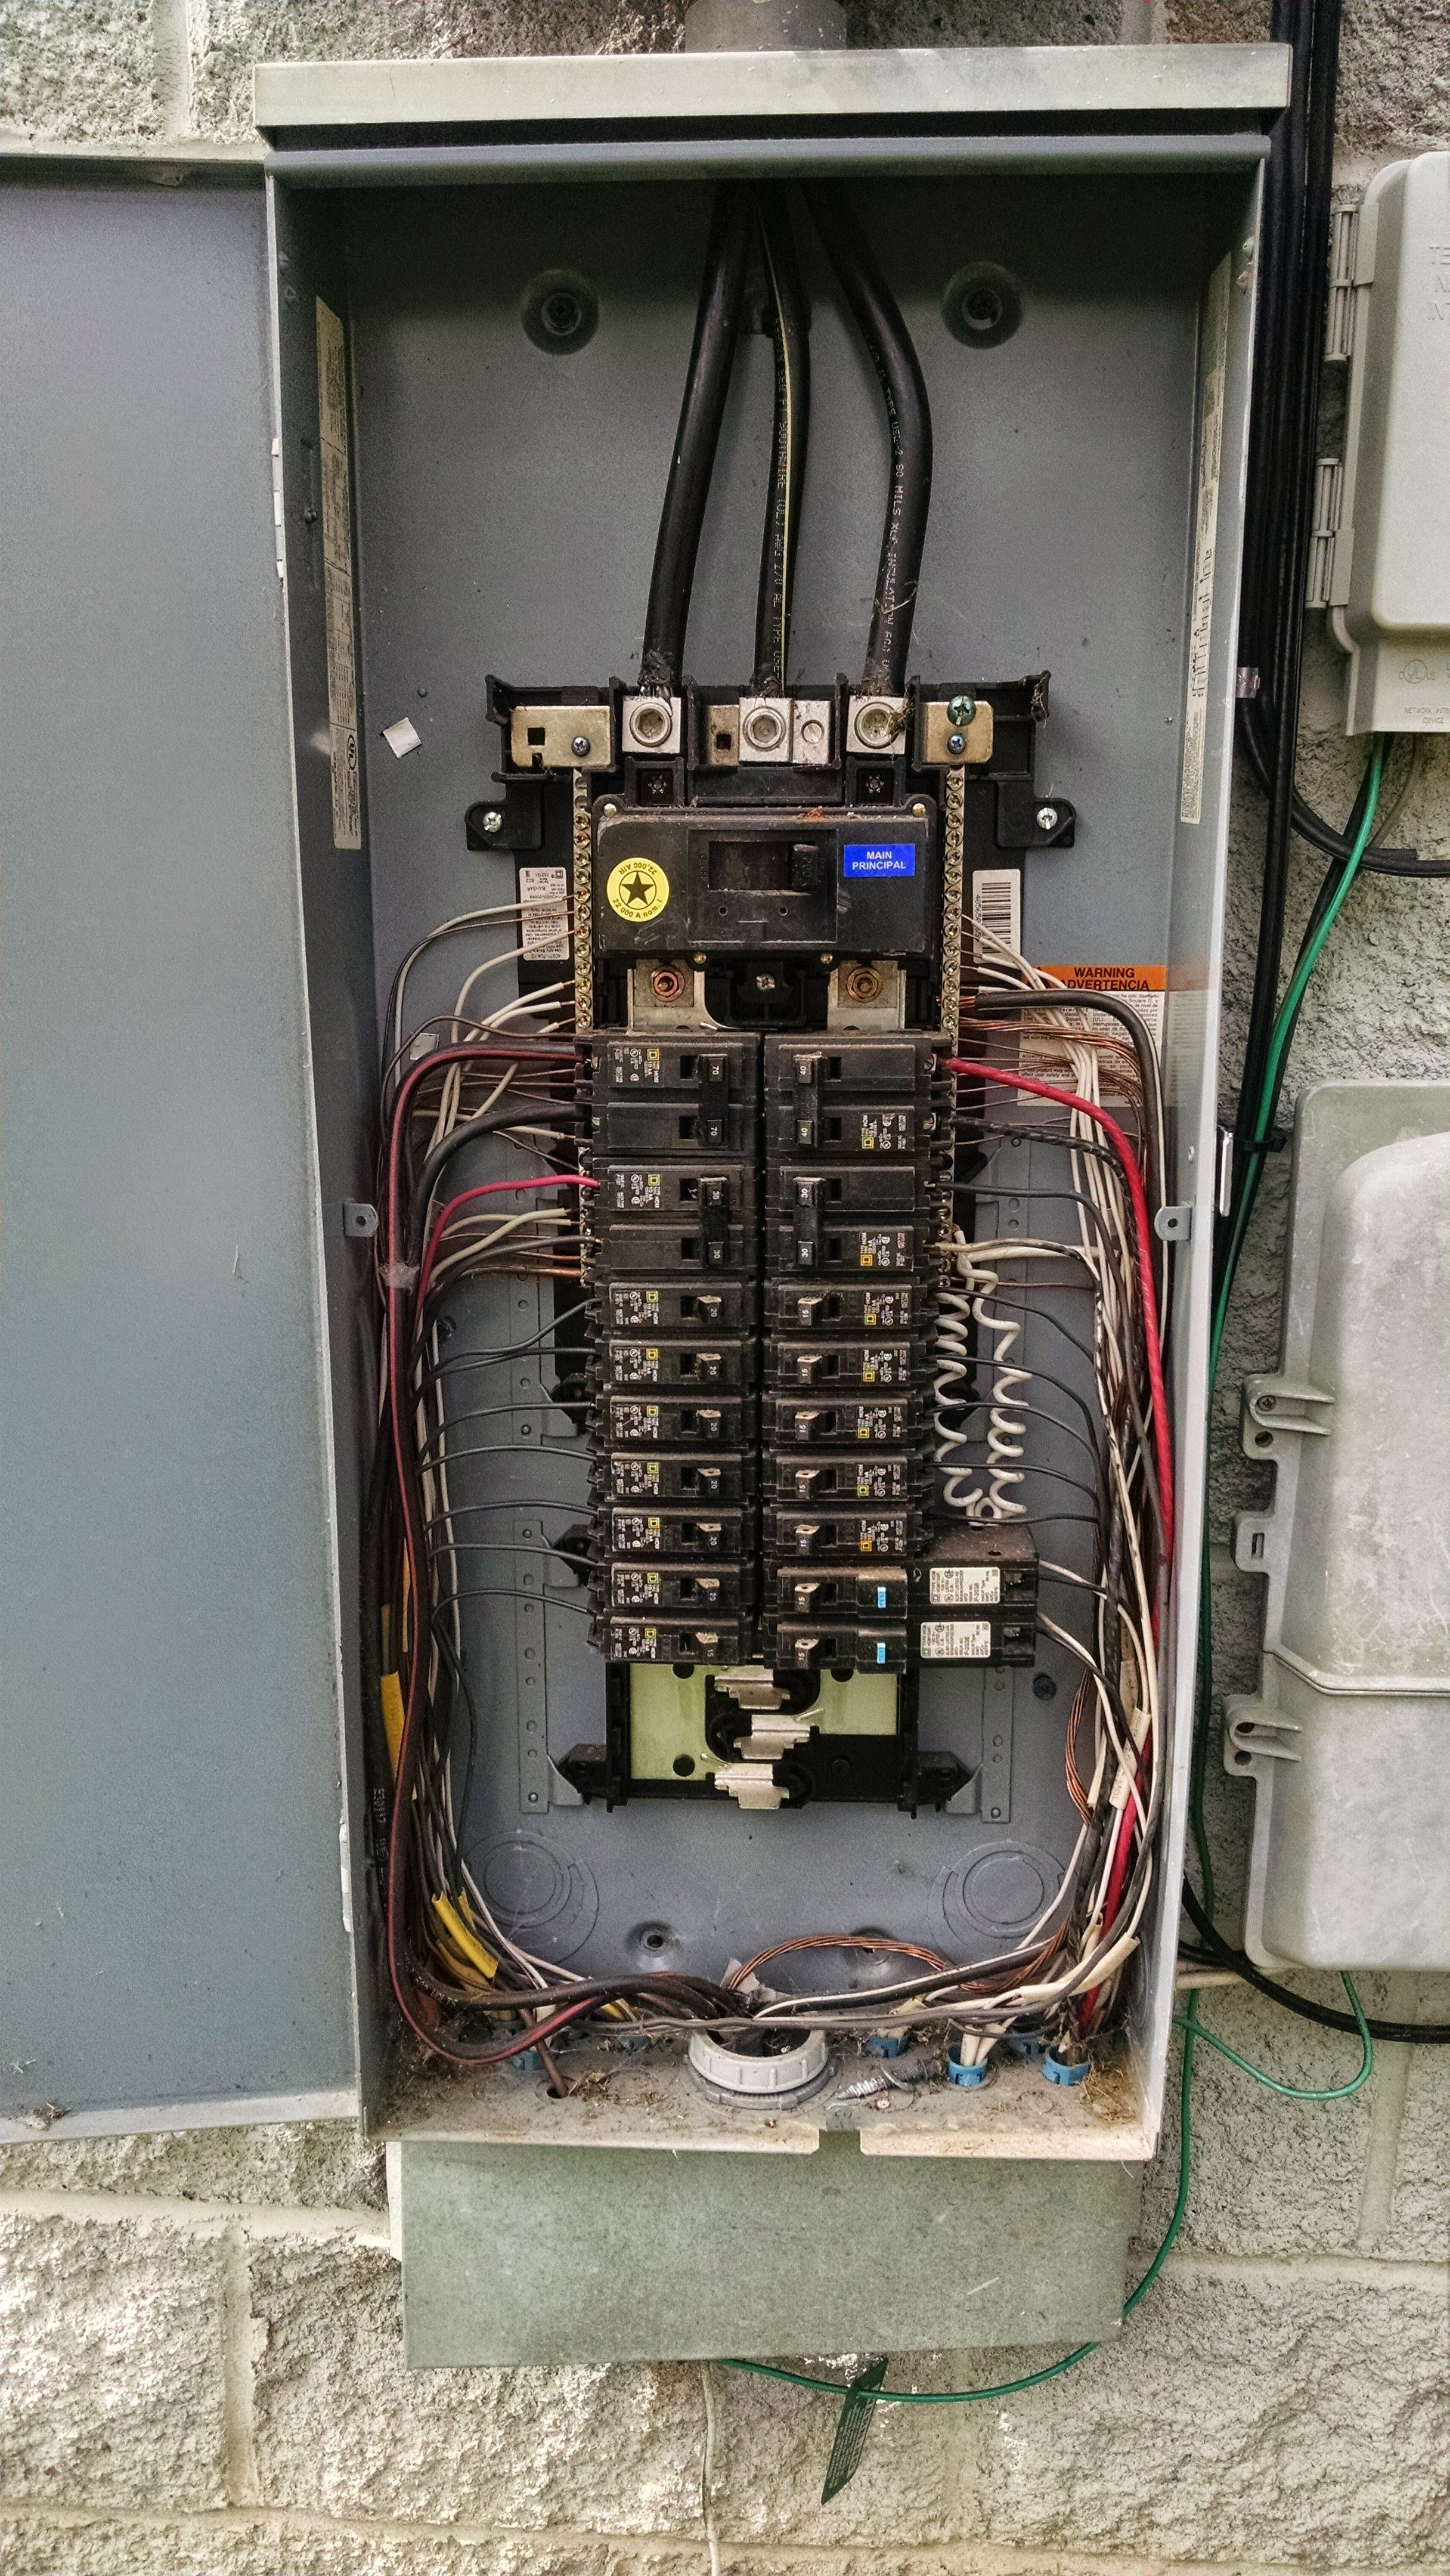 hight resolution of we at slagle electric service in knoxville tn changed out upgraded wiring electrical panels homeline